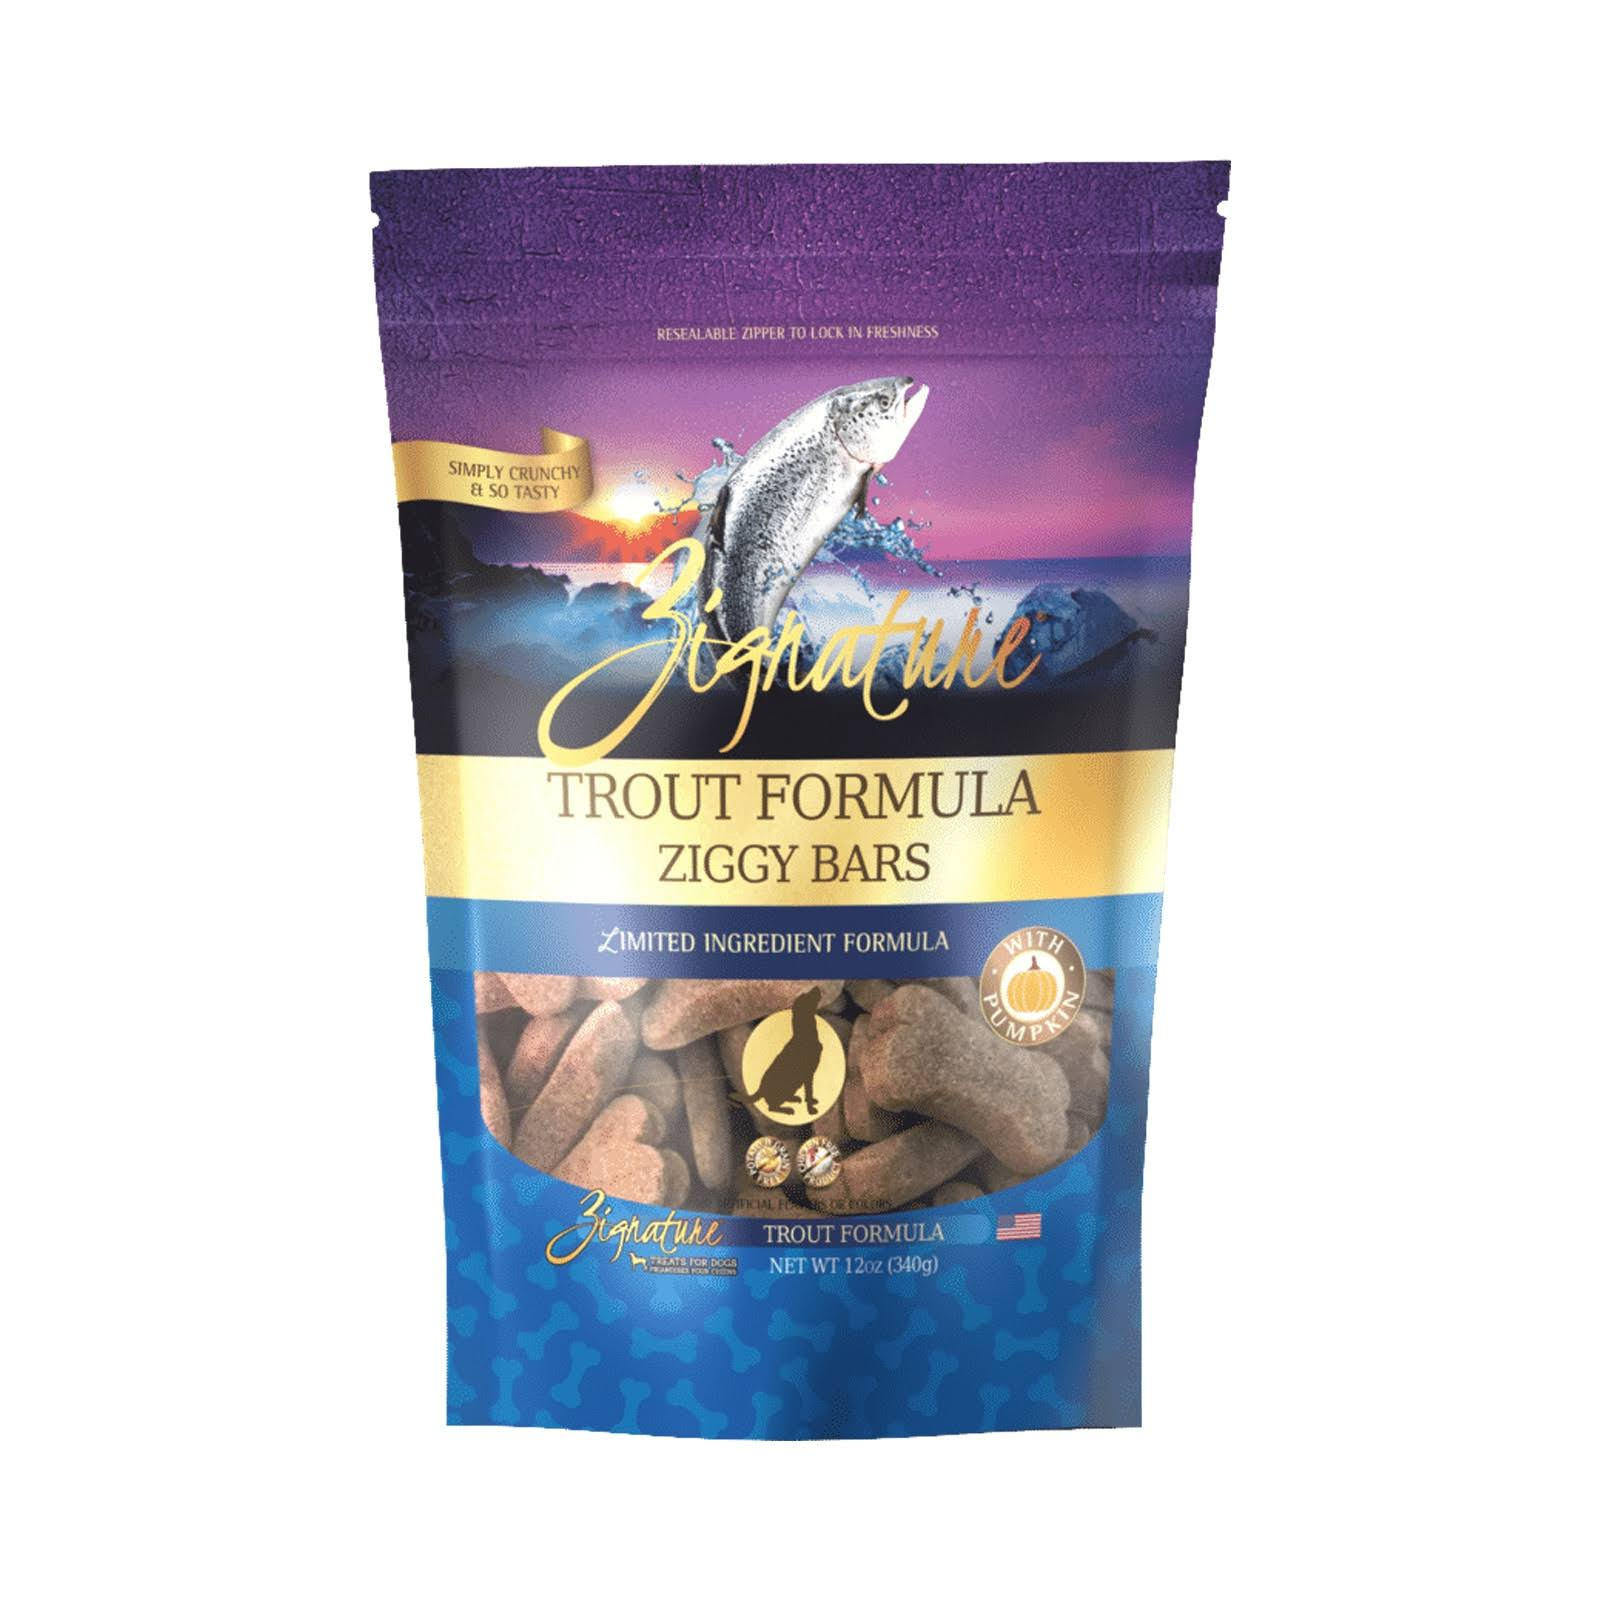 Zignature Zssential Ziggy Bars Trout Formula Dog Treats - 12 oz